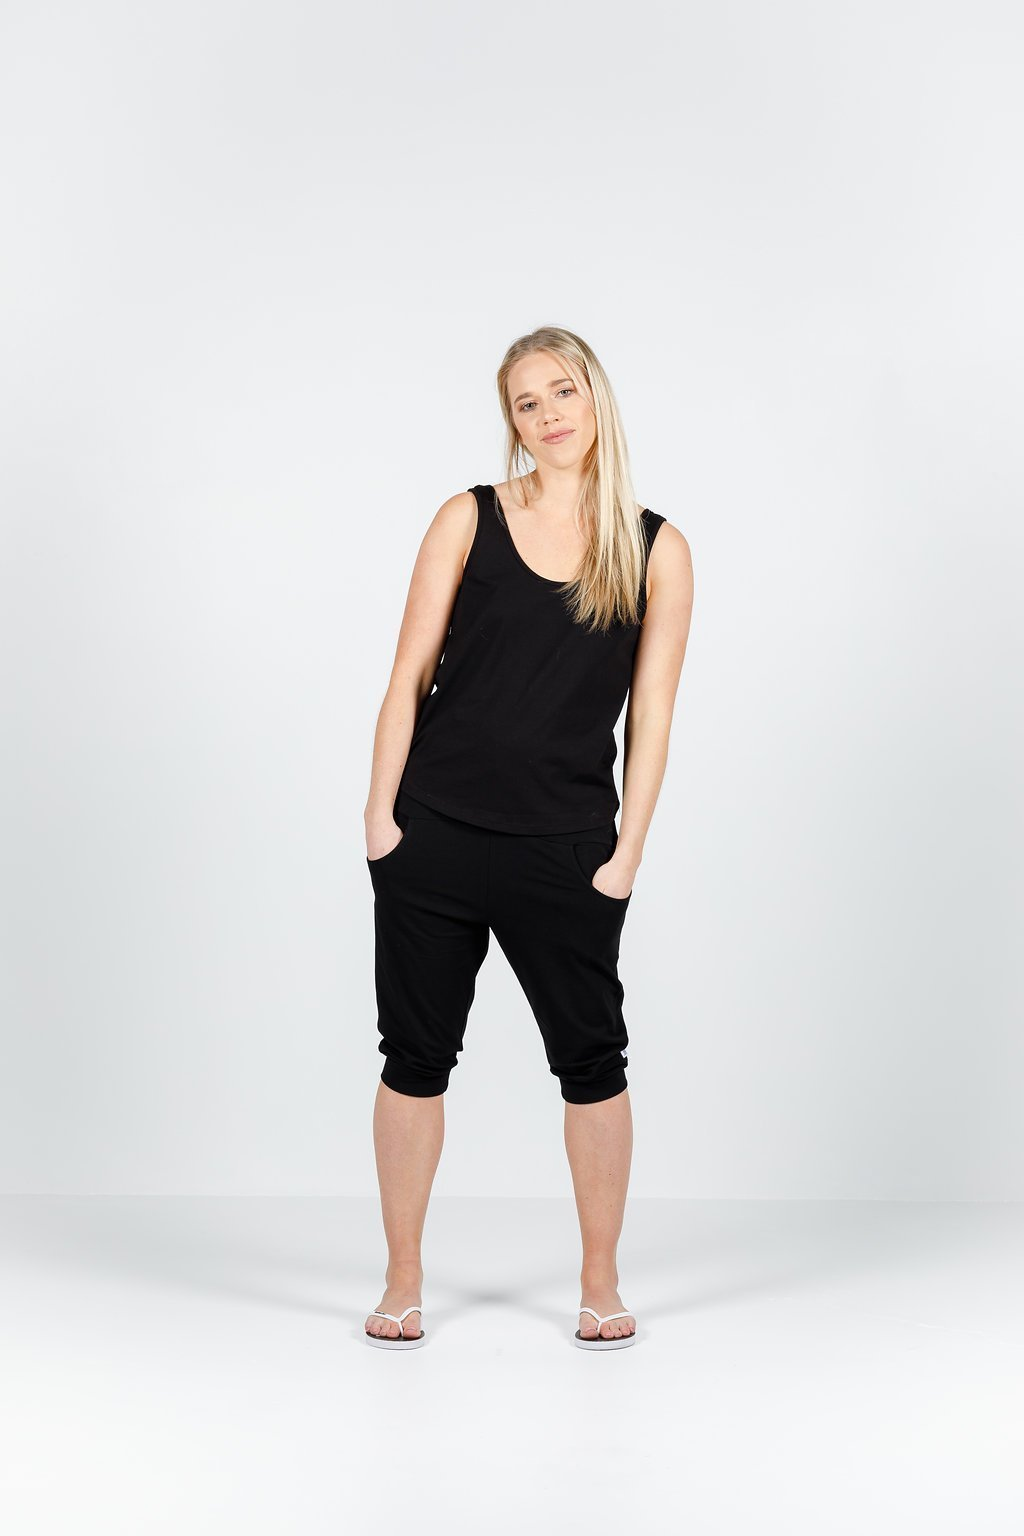 3/4 APARTMENT PANT BLACK WITH BLACK PRINT - No image set - Ebony Boutique NZ